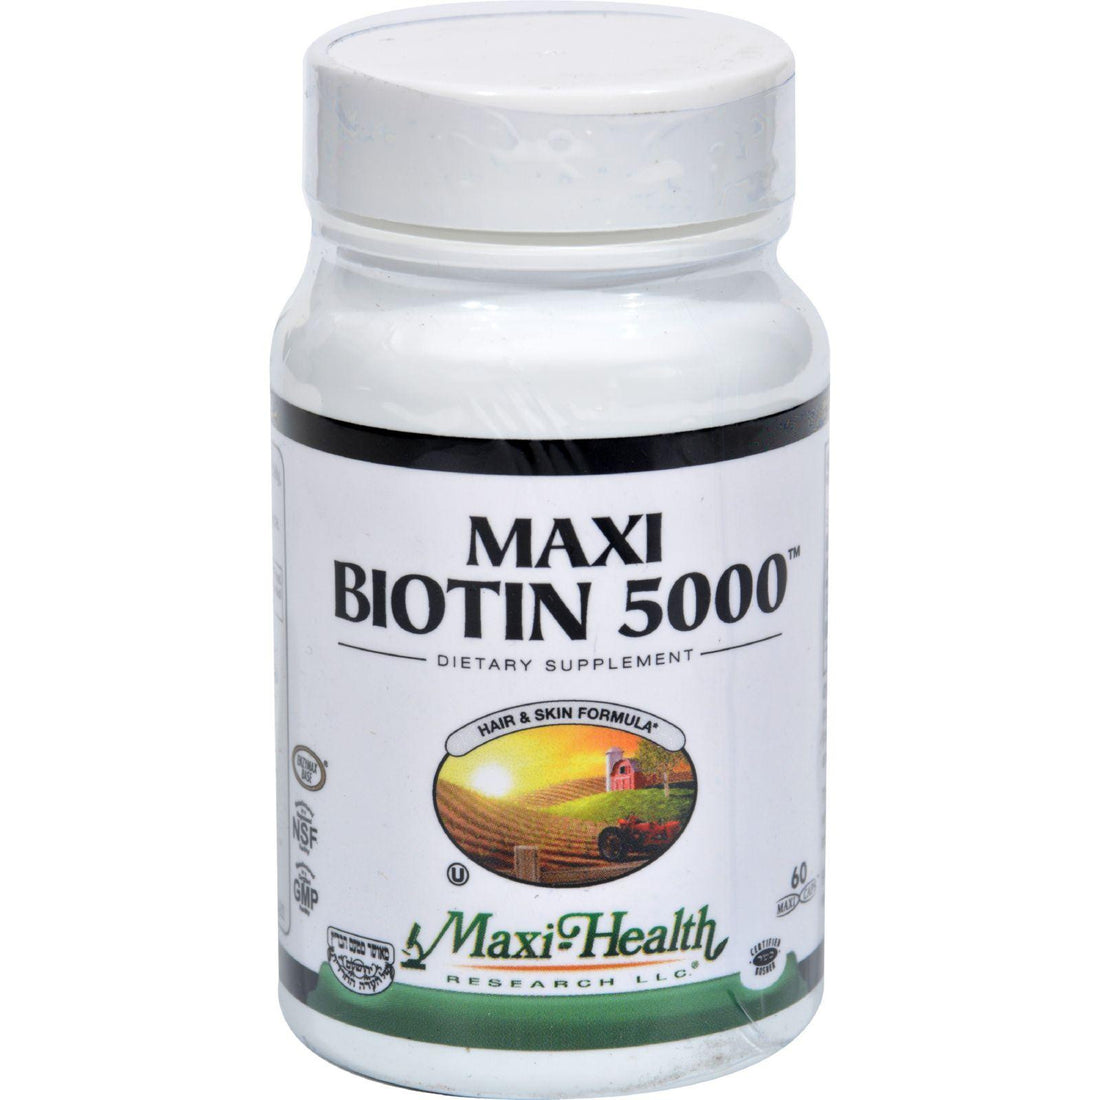 Mother Mantis: Maxi Health Kosher Vitamins Maxi Biotin 5000 - 60 Capsules Maxi Health Kosher Vitamins